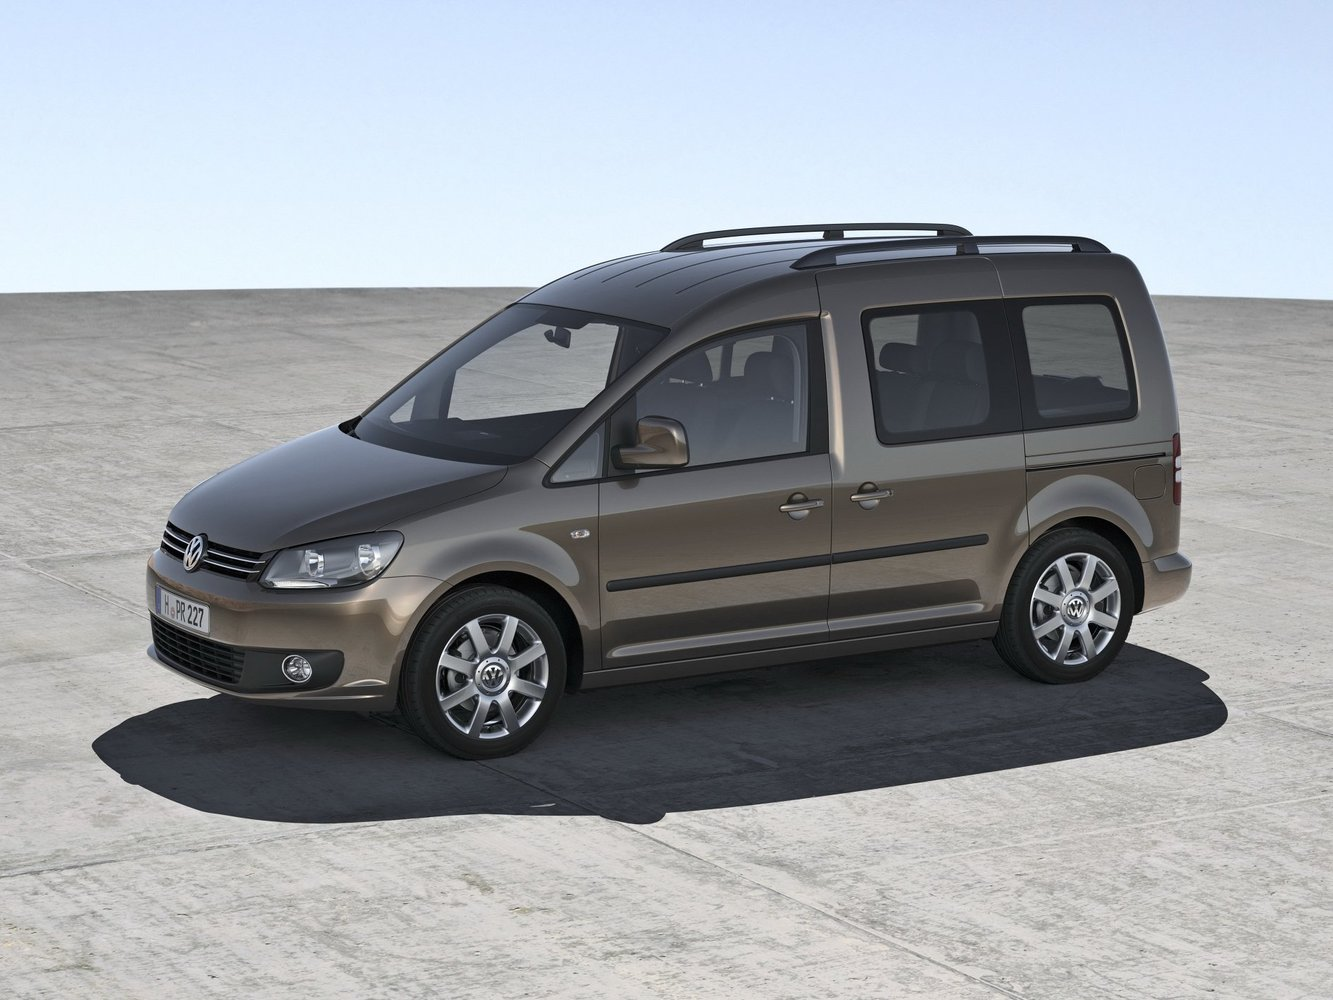 Volkswagen Caddy 2010 - 2015